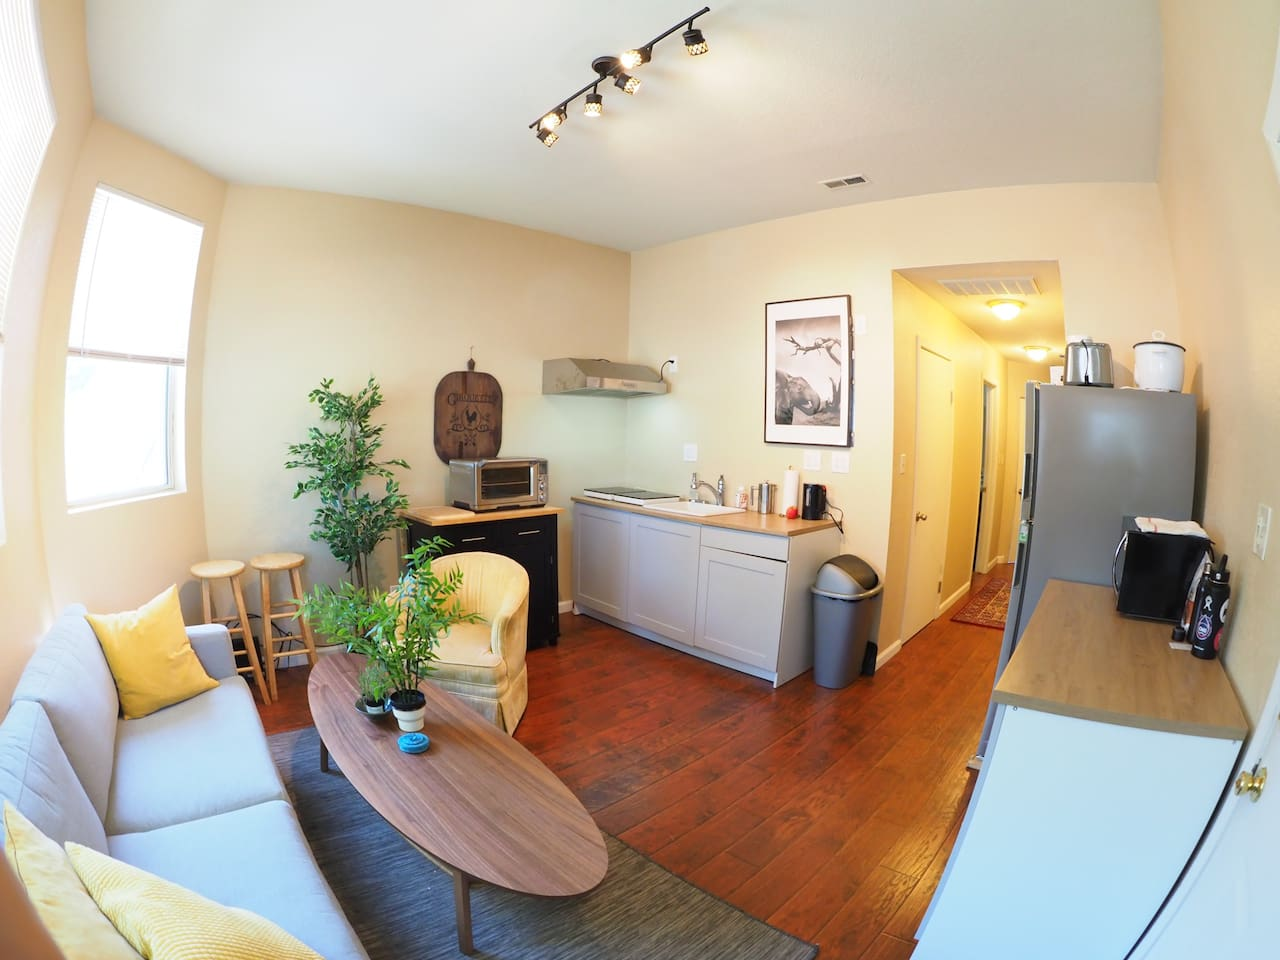 Shared Kitchenette and Living Room